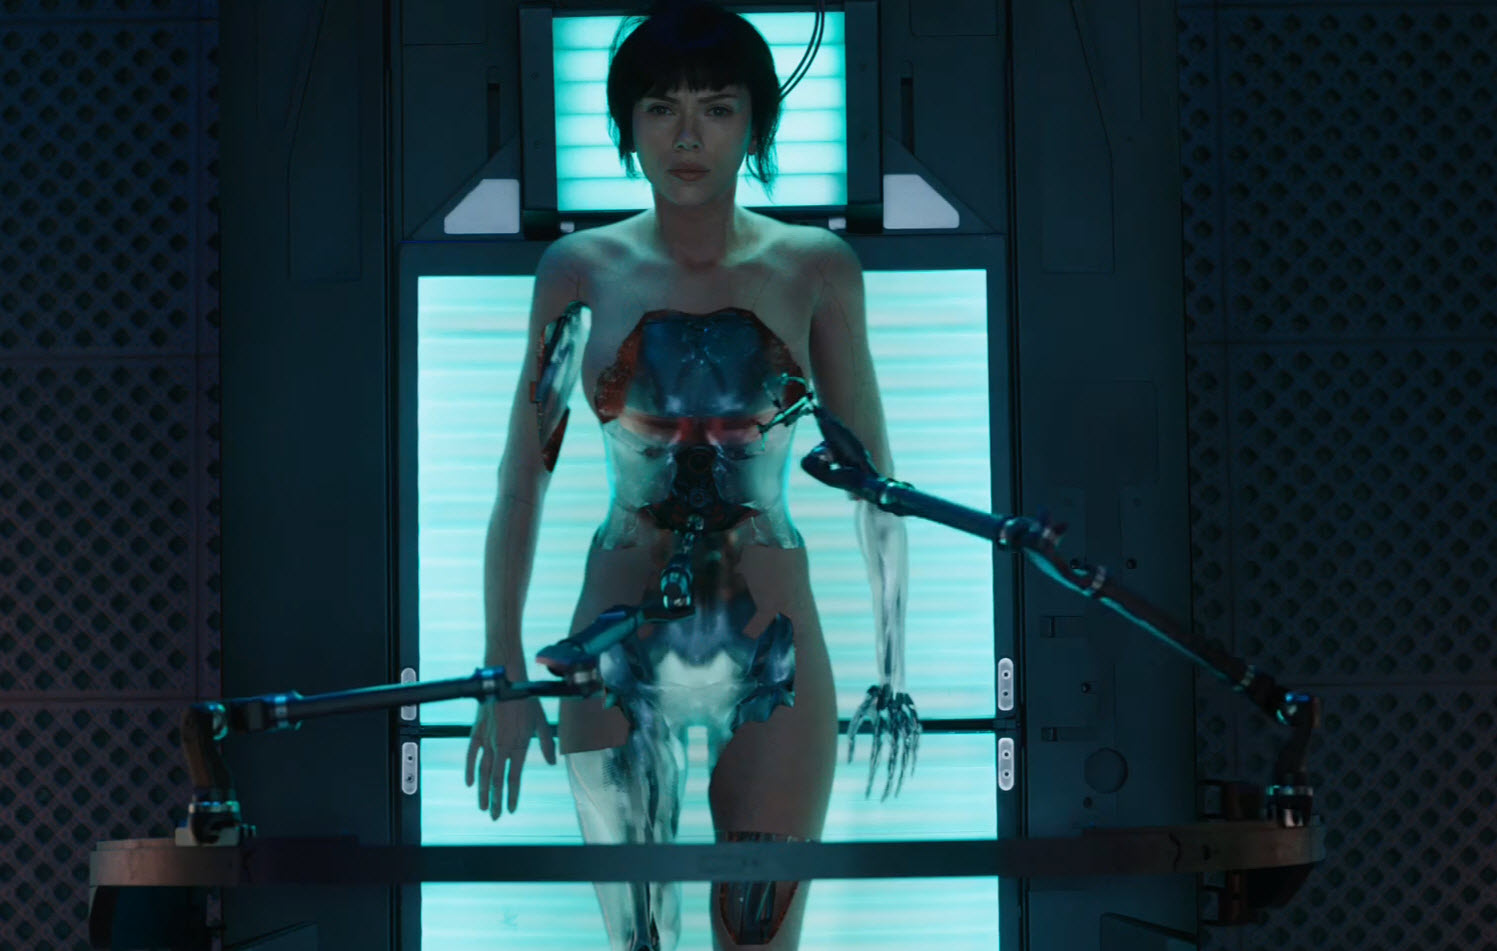 New 'Ghost in the Shell' Trailer Drops After Tokyo Launch